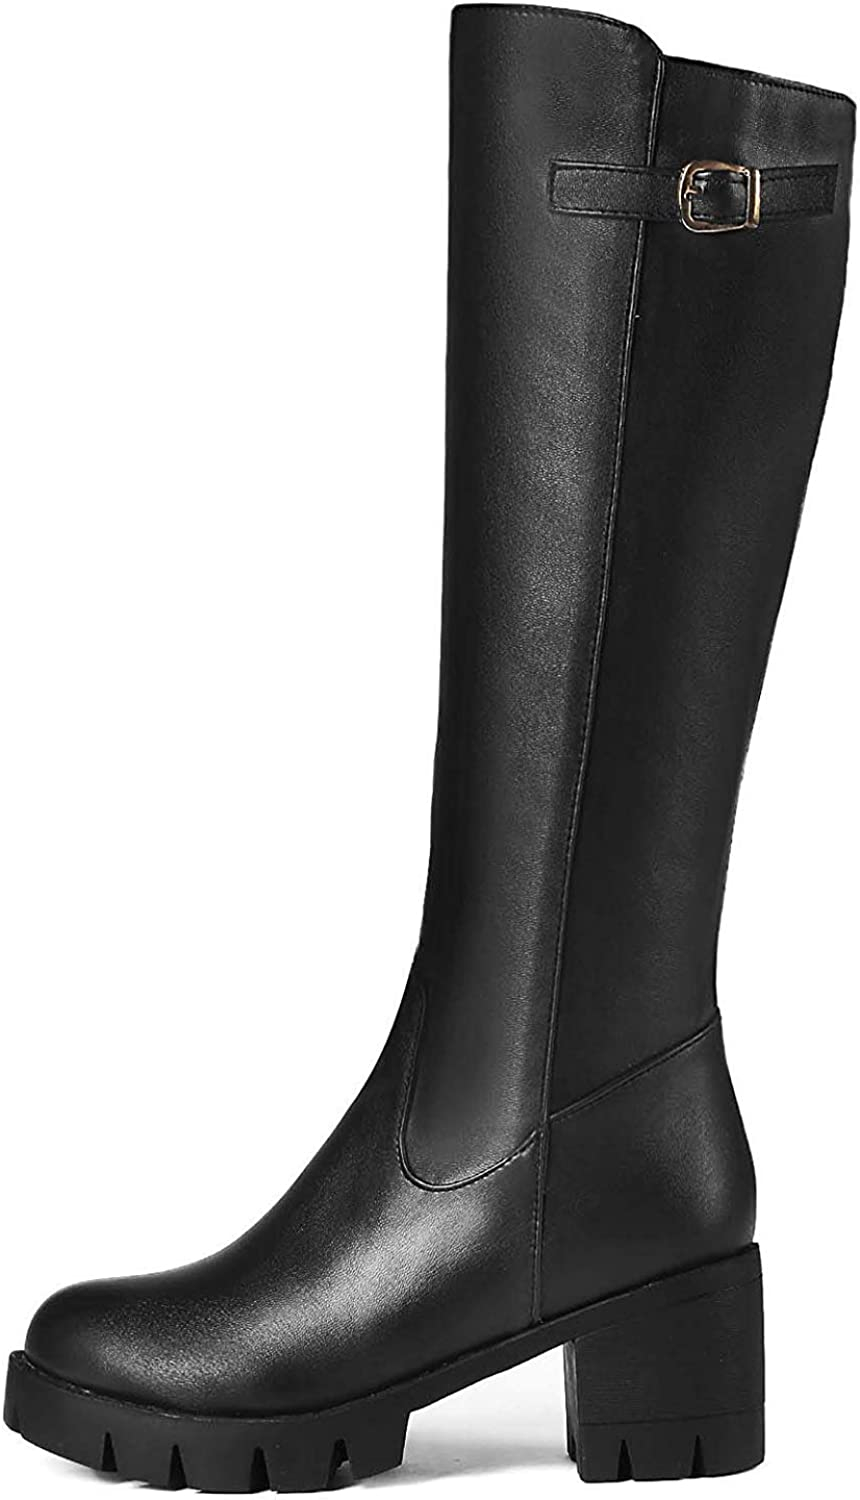 Unm Women's Stylish Buckle Strap Mid Block Heel Tall Boots Round Toe Platform Knee High Knight Boots with Zipper